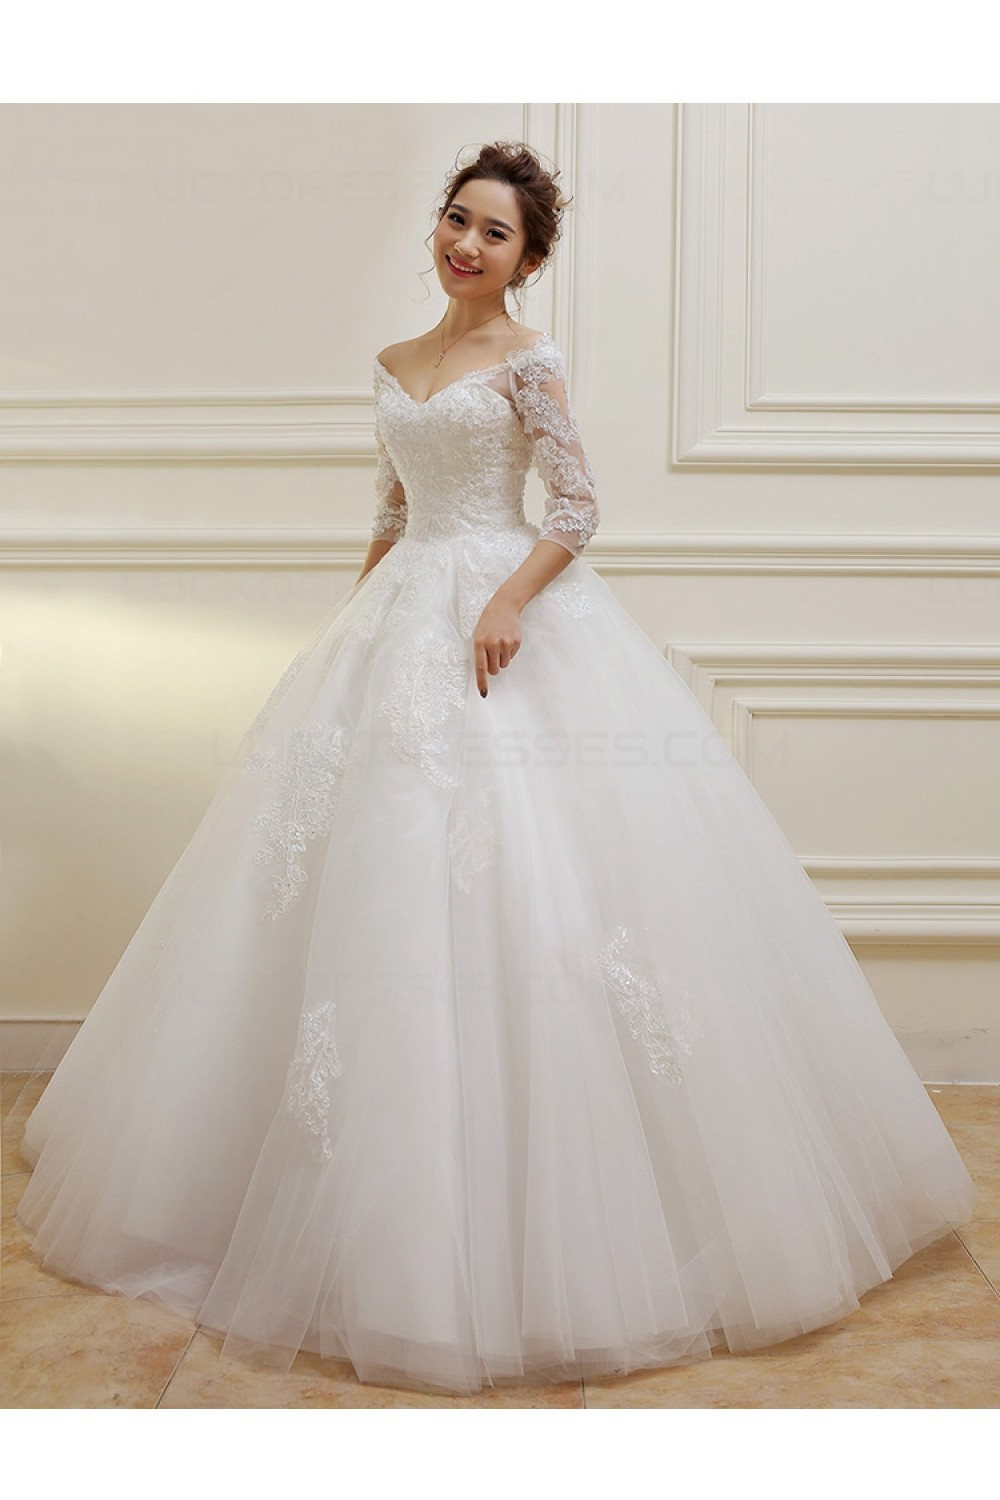 Lace Wedding Gowns  3 4 Length Sleeves V Neck Lace Wedding Dresses Bridal